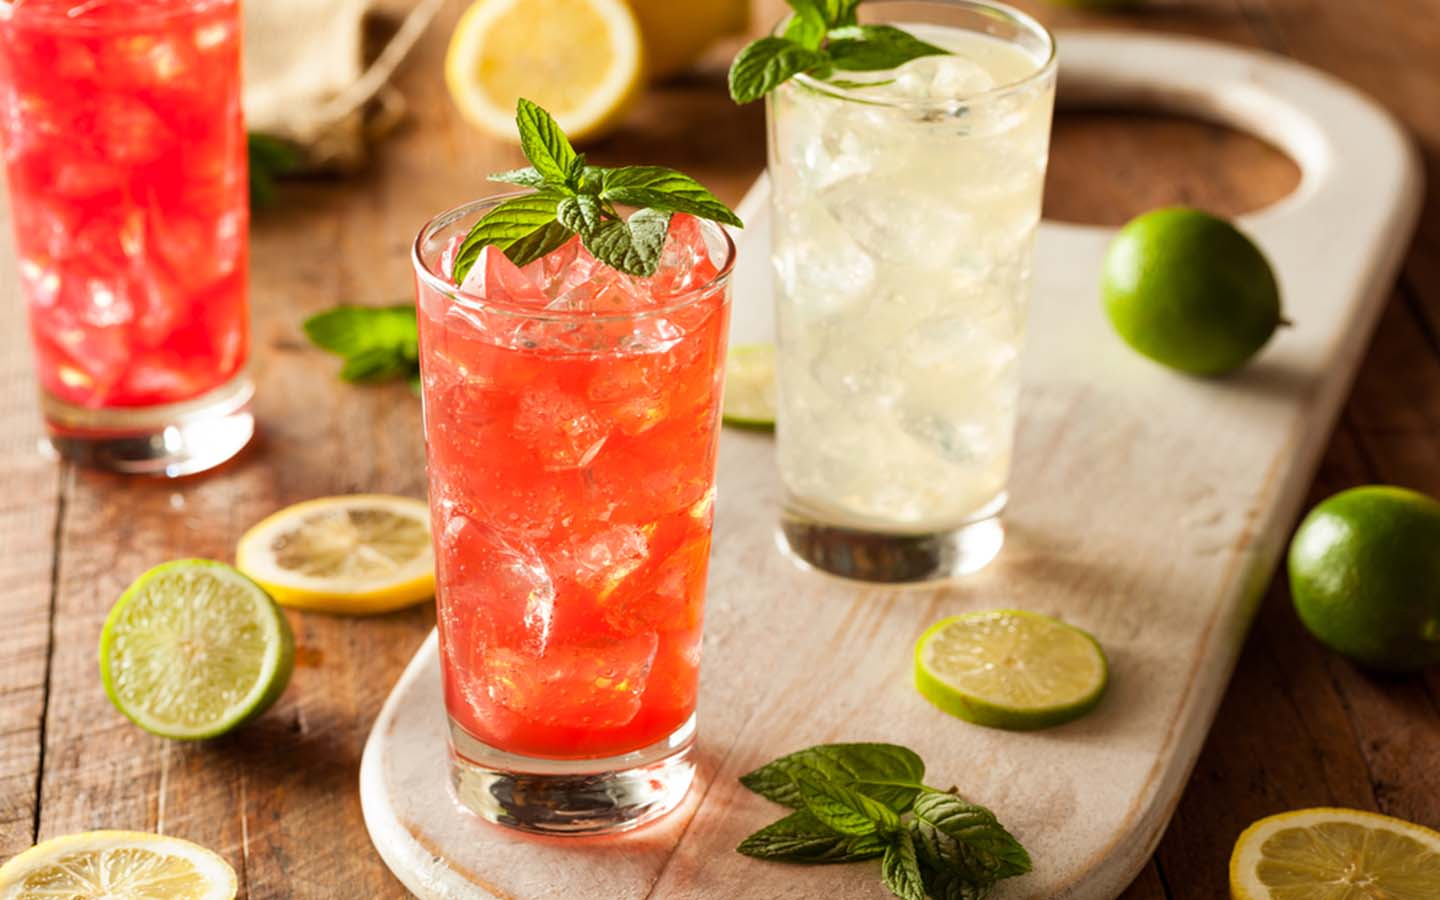 refreshing and cooling drinks with mint and lemon zest